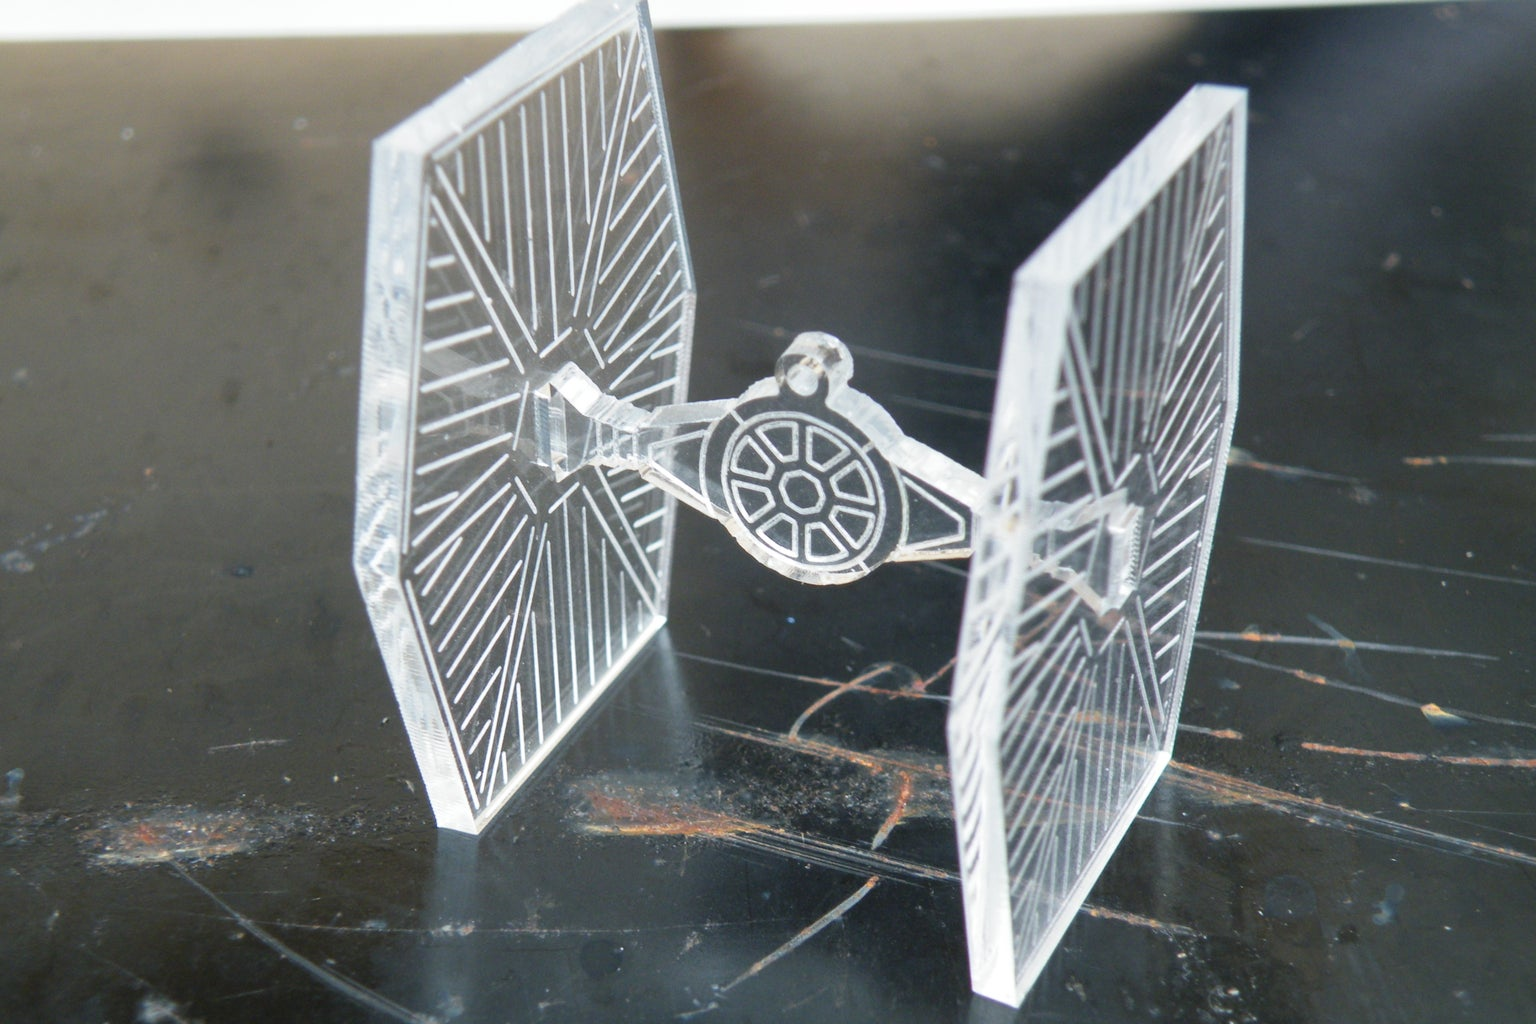 Assemble the Tie Fighter